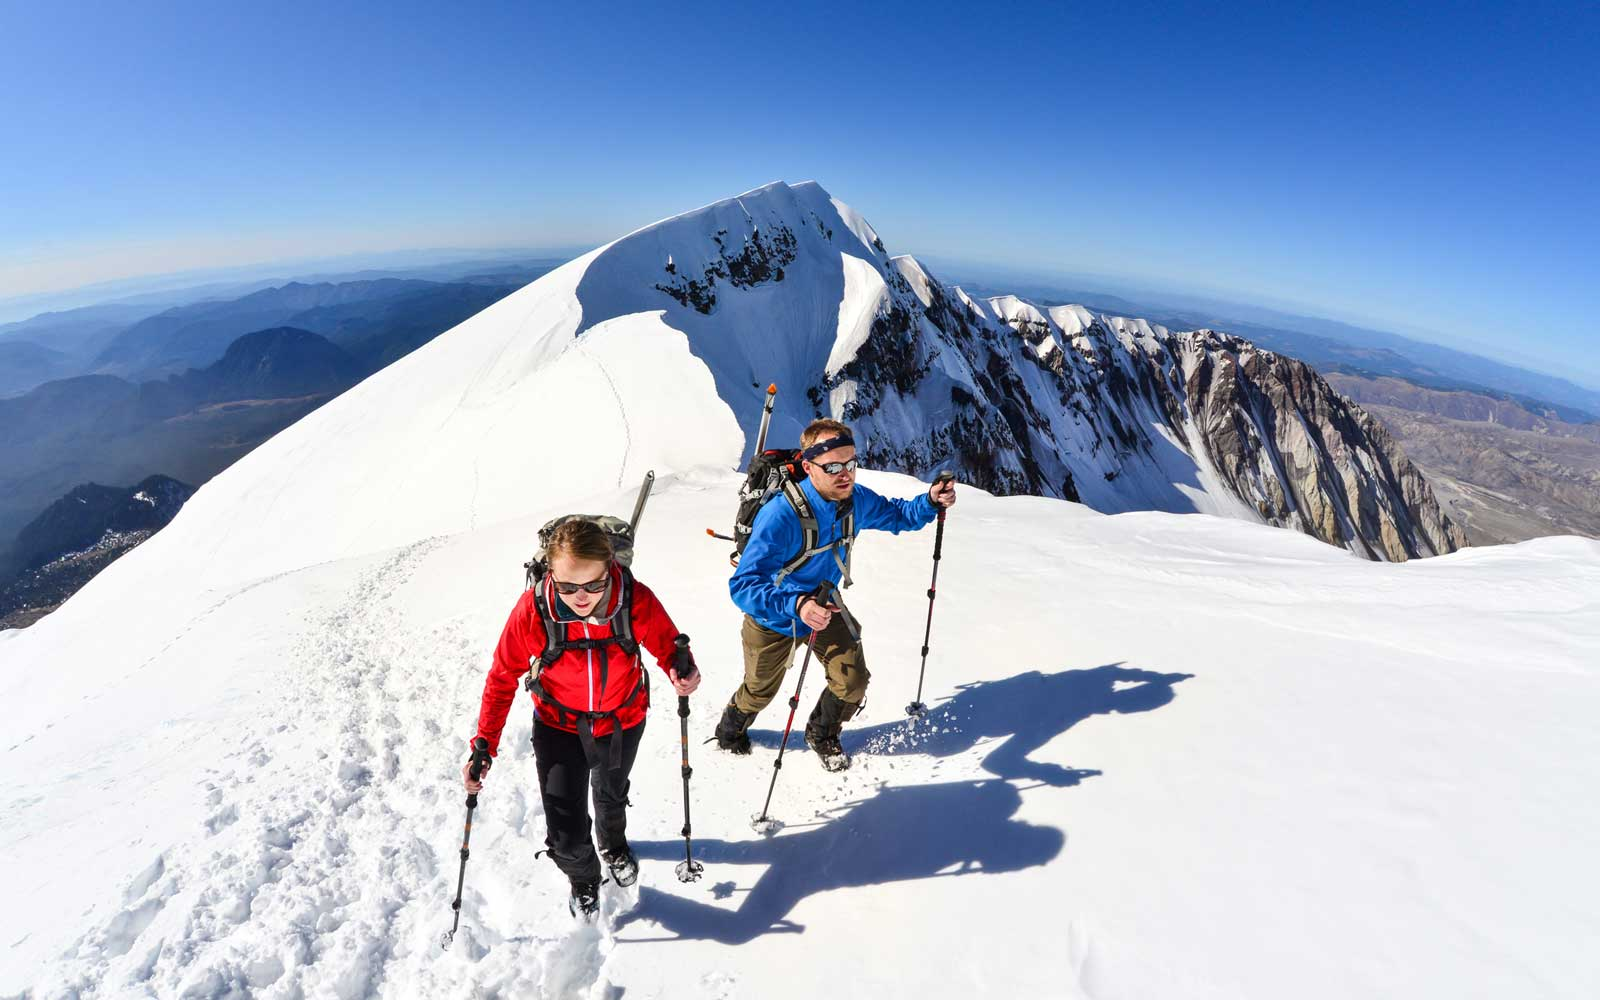 A woman and man traverse the summit ridge of Mt. St. Helens, Washington State.